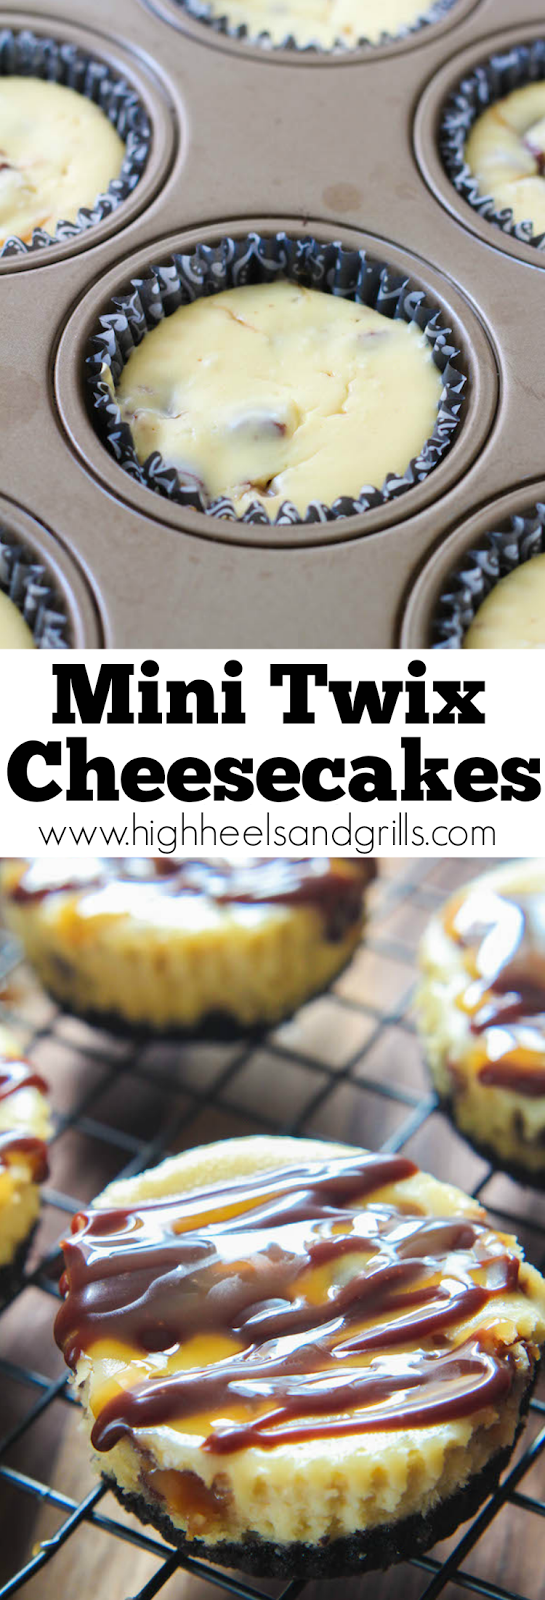 Mini Twix Cheesecakes - Everything about these is amazing. They're creamy and smooth, with an Oreo bottom and the chocolate/caramel combo is amazing!